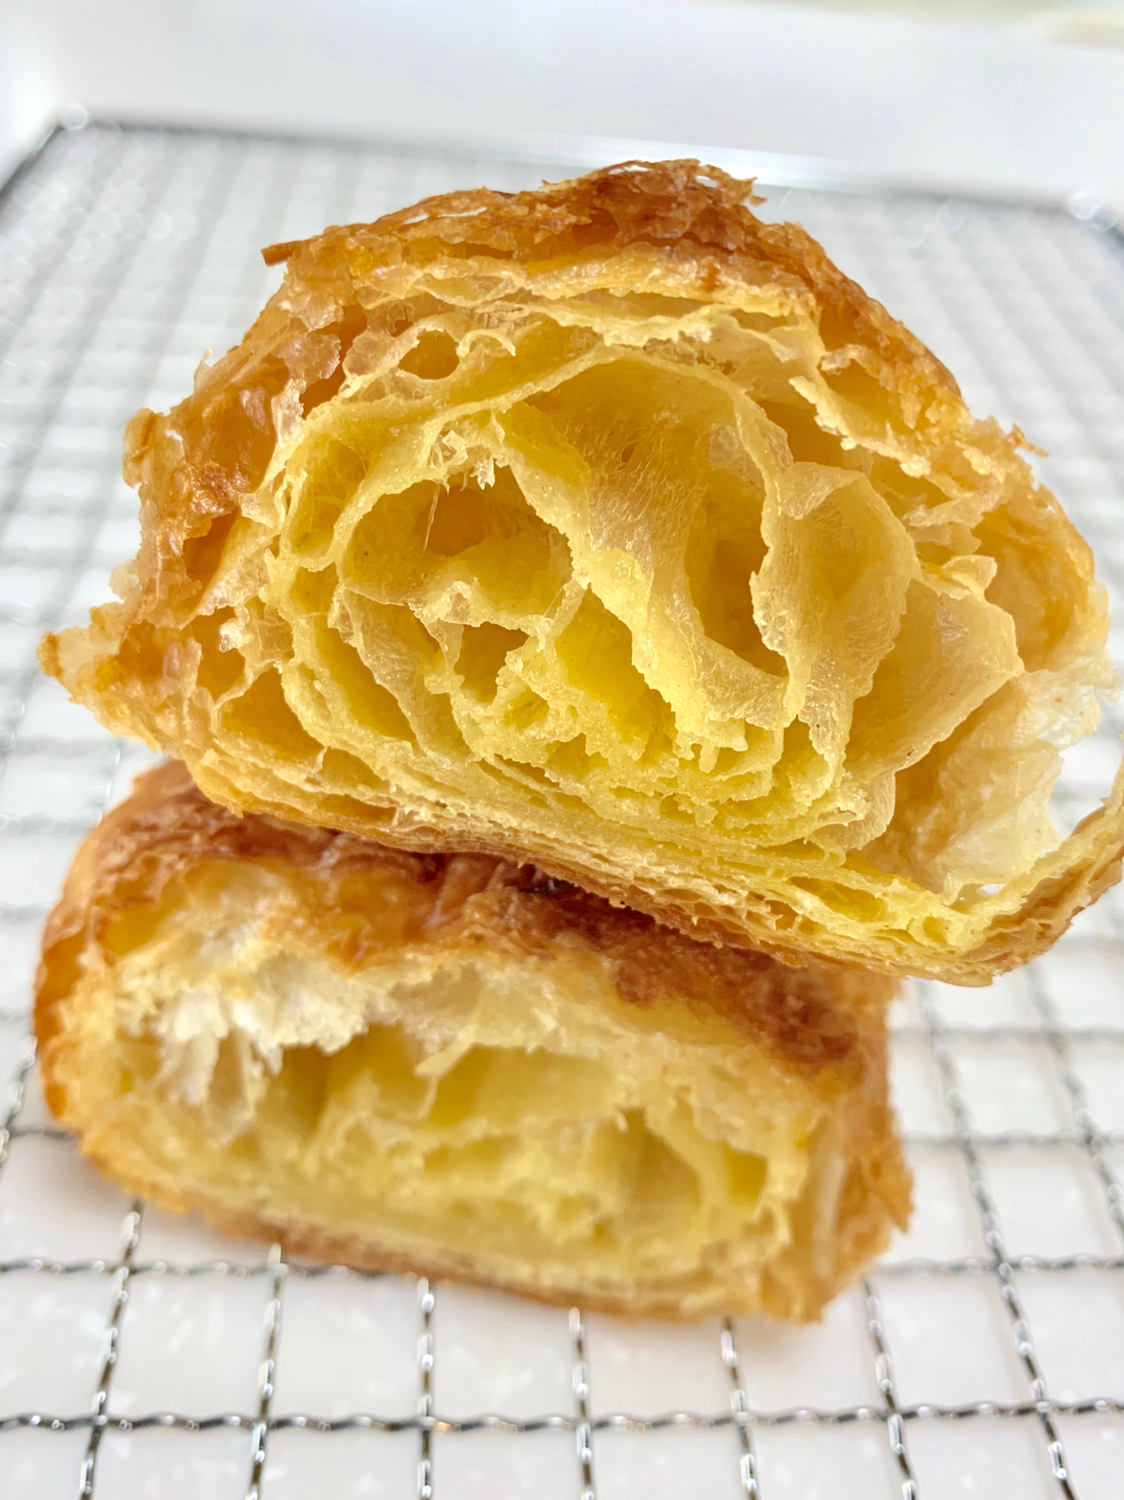 Cut end of the croissants